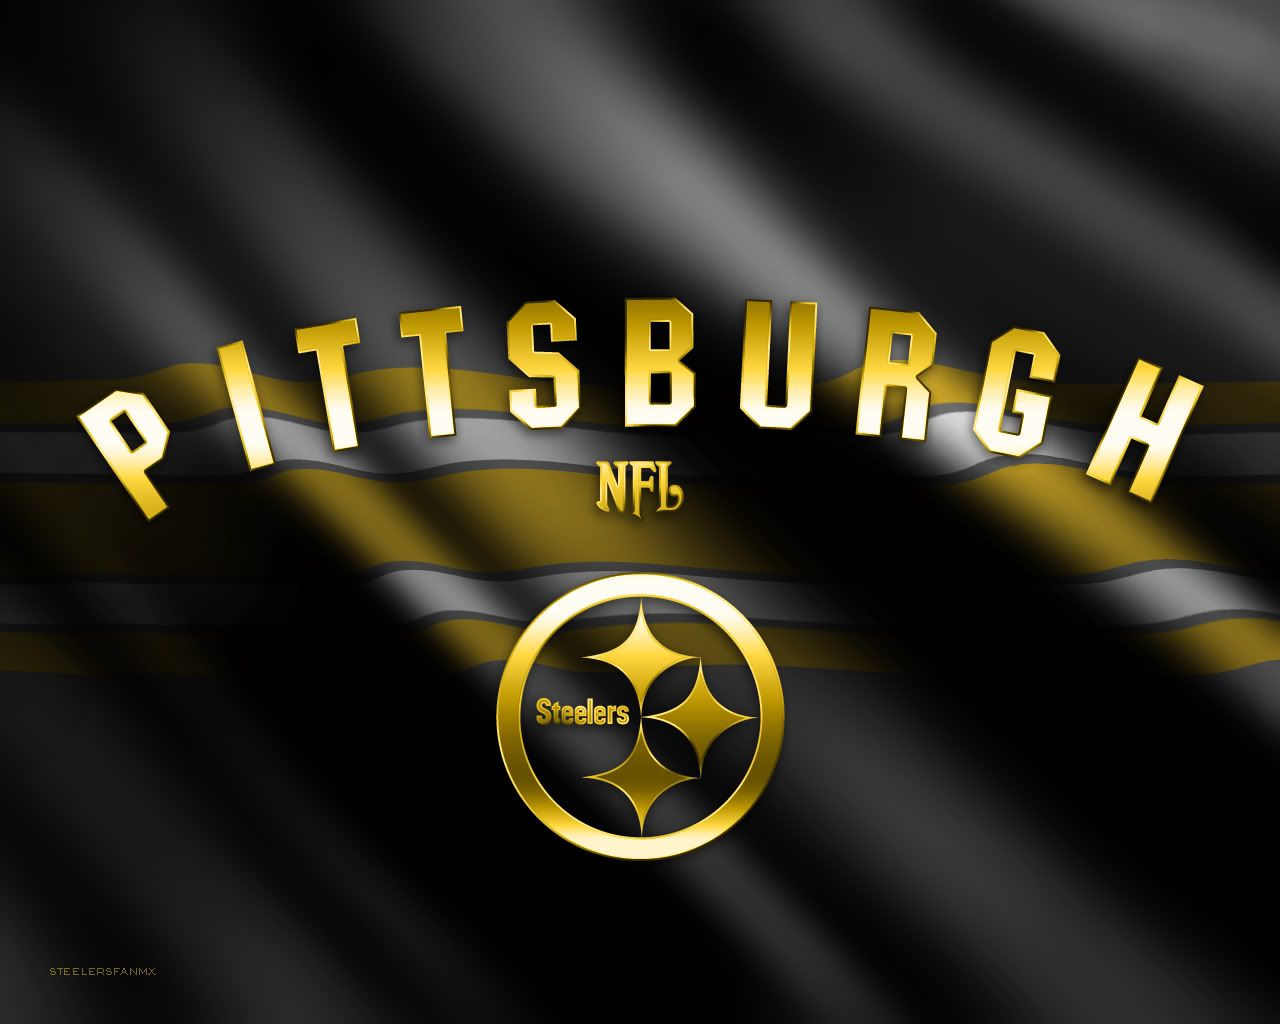 Download Pittsburgh Steelers Wallpapers HD. Football, NFL